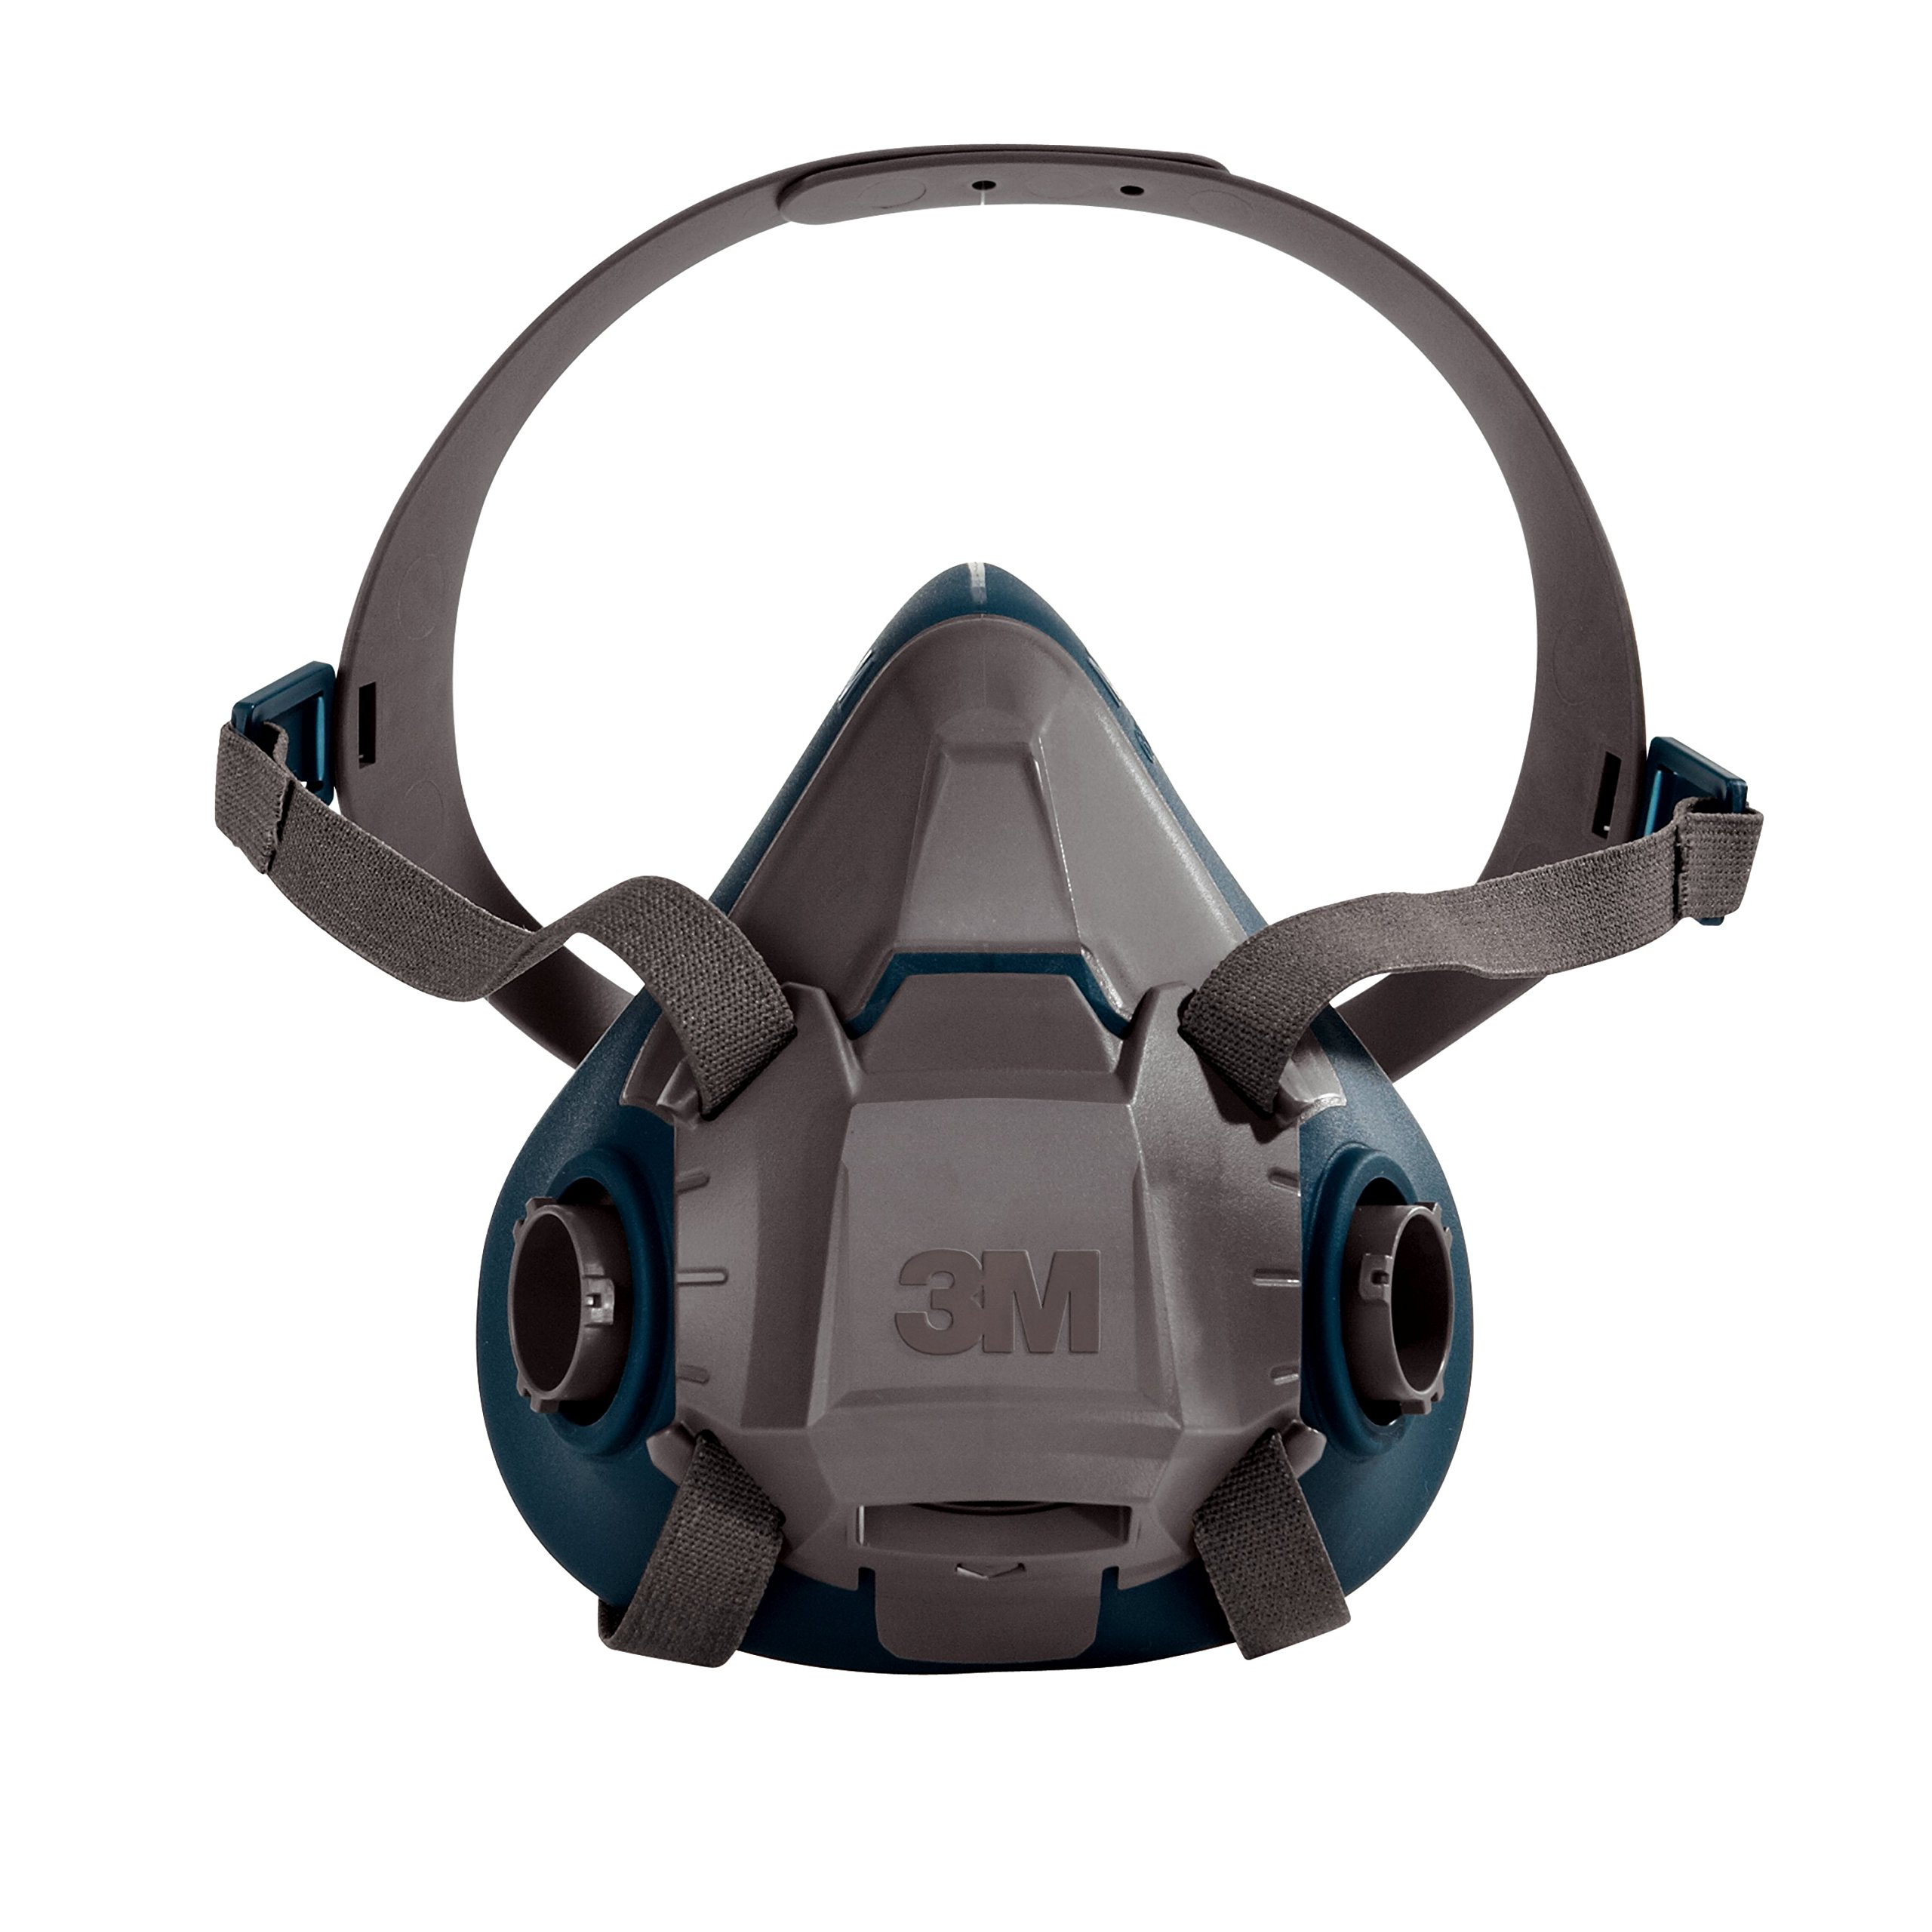 3M Rugged Comfort Half Facepiece Reusable Respirator 6502/49489, Medium, Gray/Teal